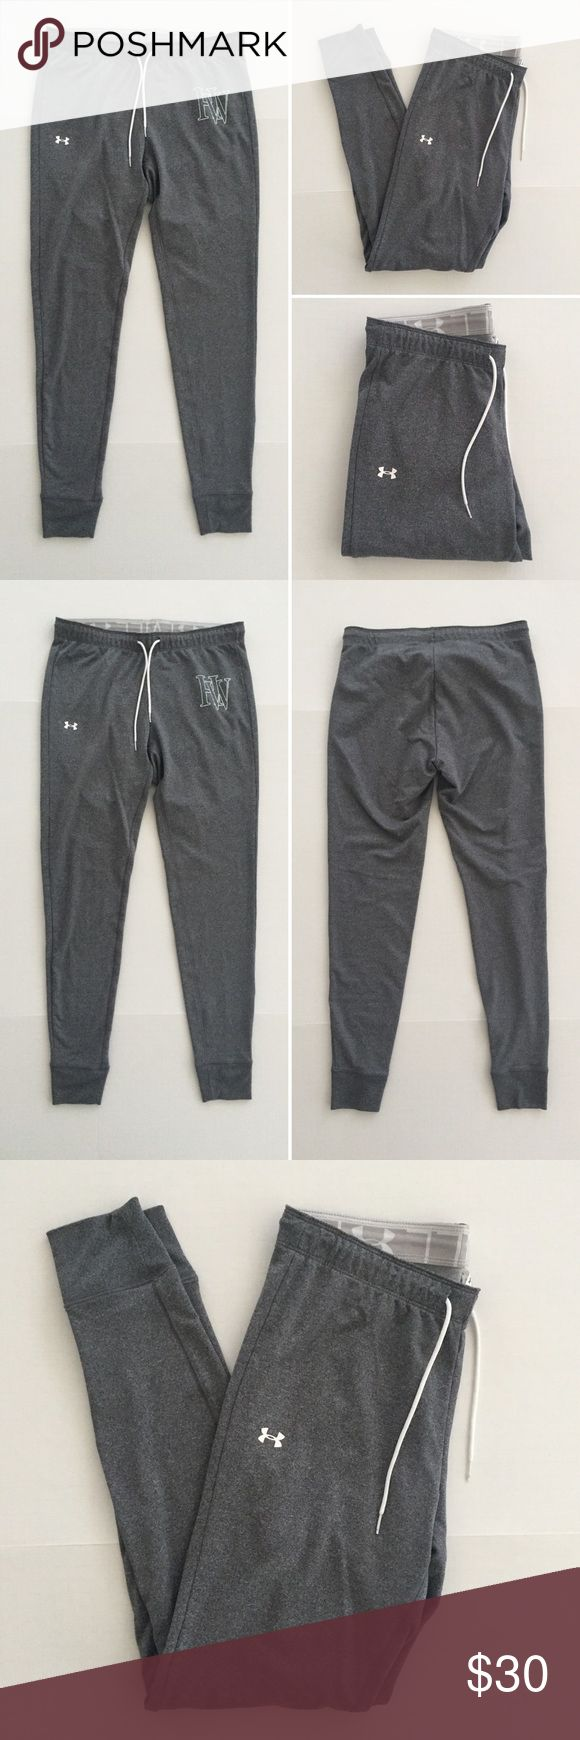 "[Under Armour] women's athletic jogger pants S-M [Under Armour] women's athletic jogger pants S-M •🆕listing •great pre-owned condition •medium dark heather grey with white screen logo (no cracking) and ""HW"" (some cracking) •elastic drawstring waistband, can be folded over to reveal ""I Will"" and UA logo •length/inseam 29"" •may fit S-M, tag size M semi-fitted •material 93% polyester 7% spandex •offers welcomed using the offer/bundle for best discount• Under Armour Pants Track Pants & Joggers"